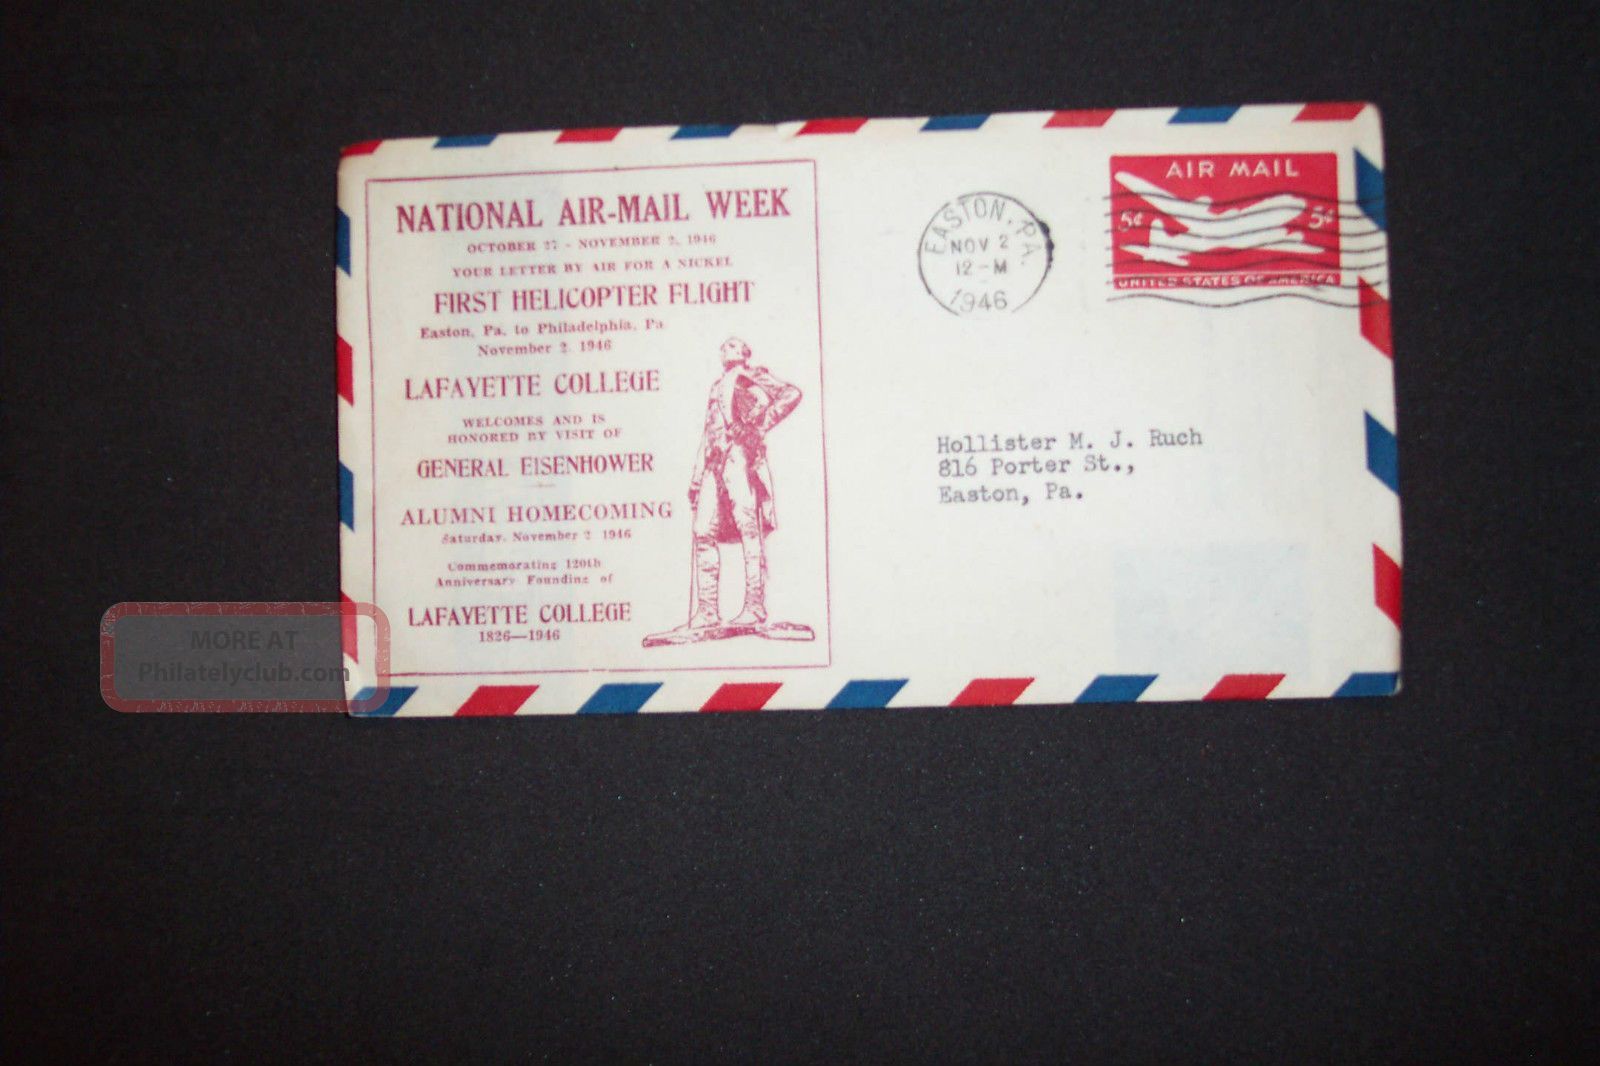 National Air - Mail Week Oct.  27 - Nov.  2,  1946 Scott Uc14 FDCs (pre-1951) photo